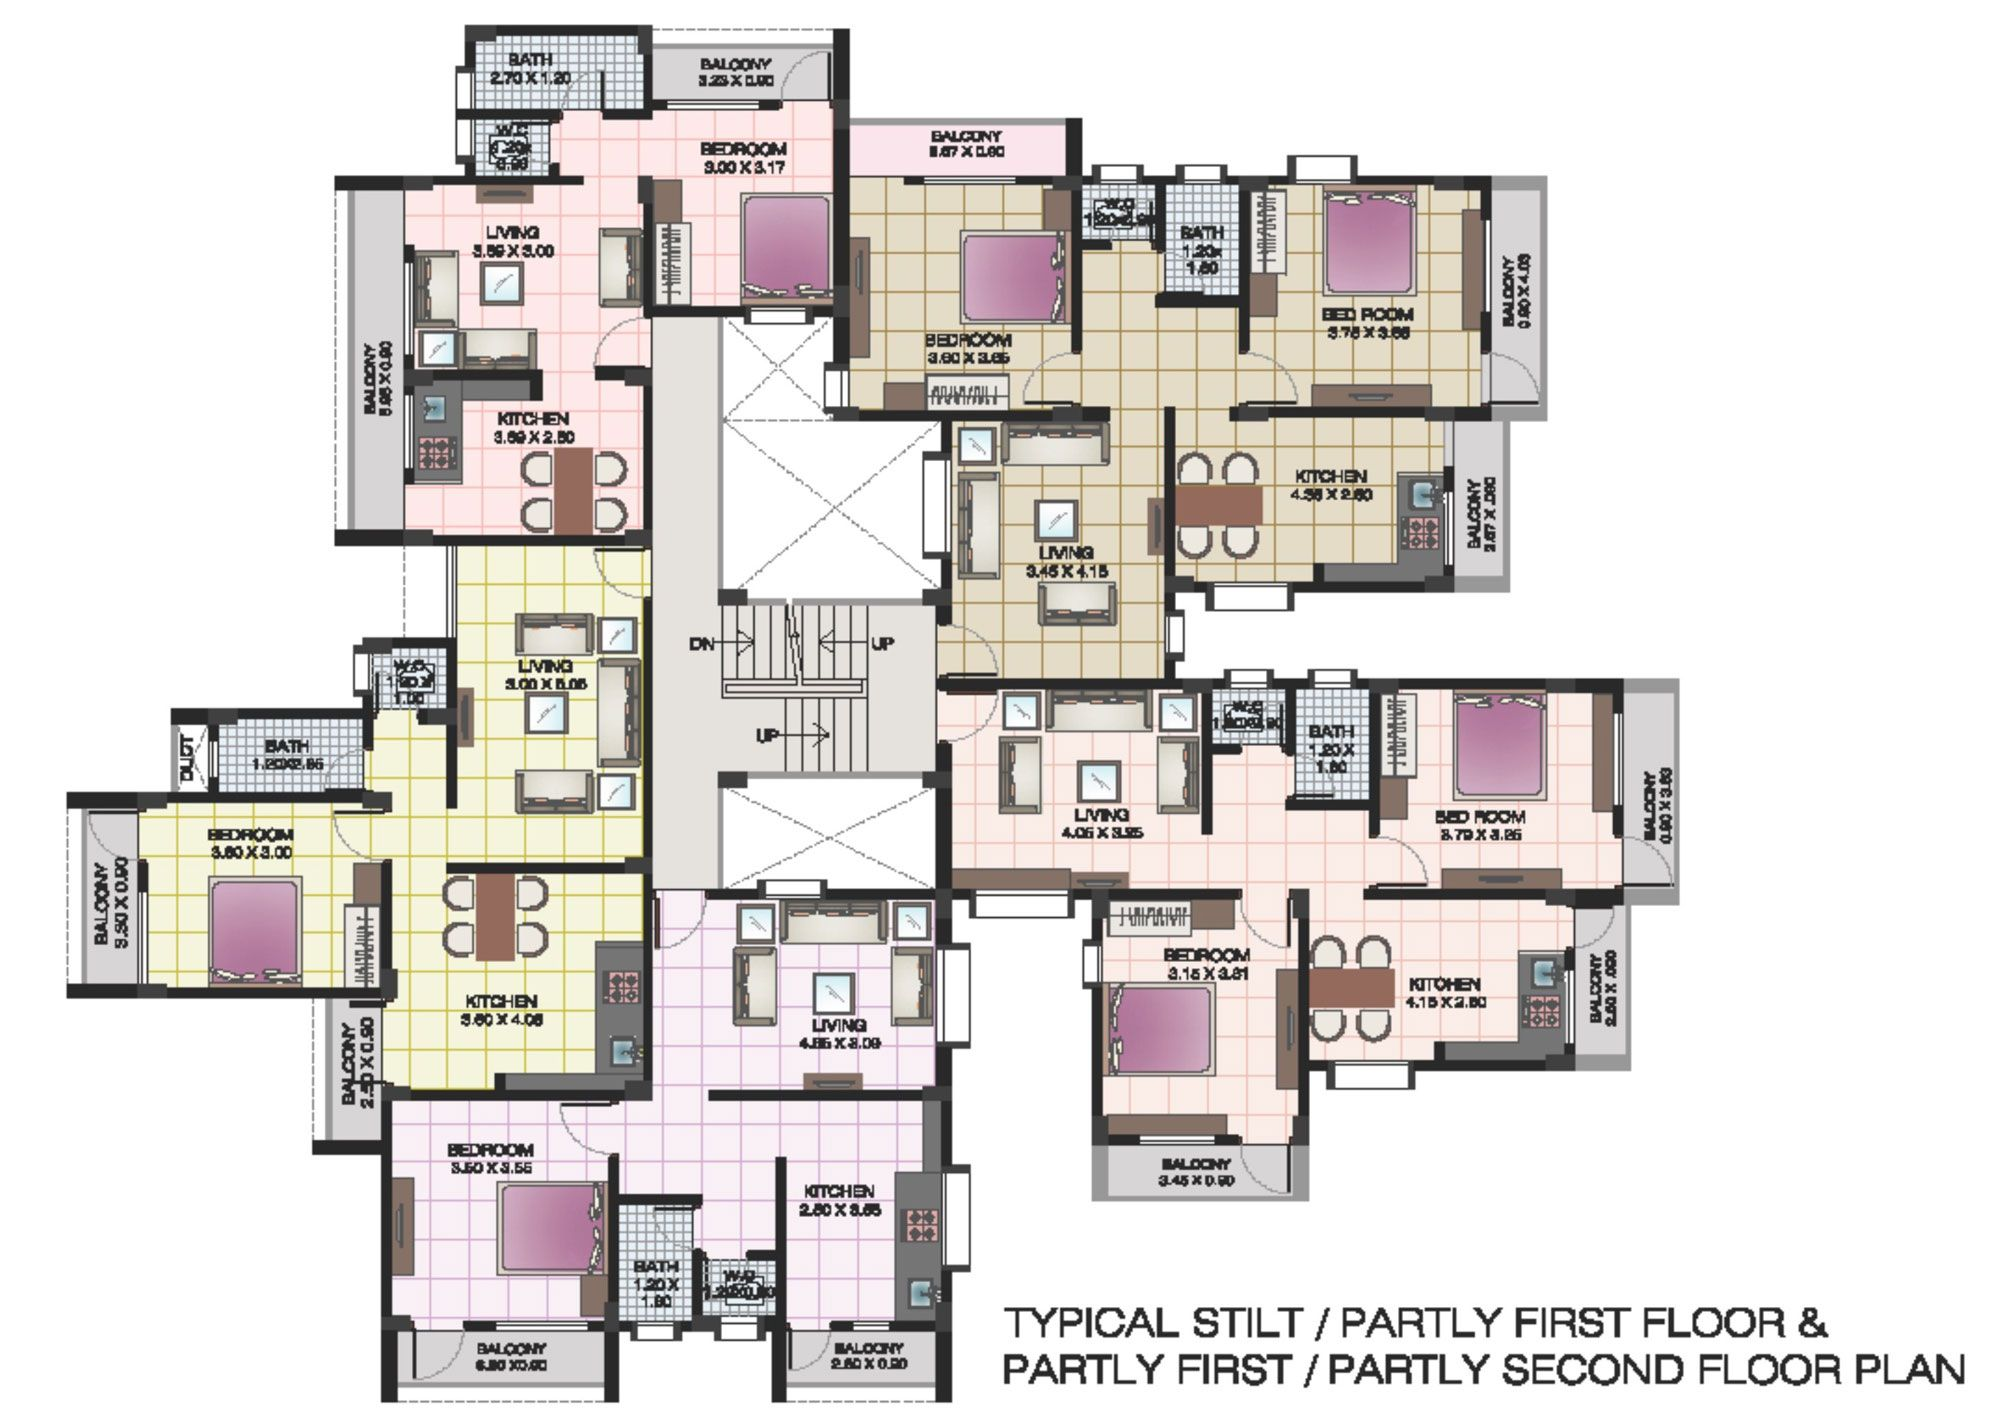 Apartment Building Architectural Plans apartment structures | apartment floor plans of shri krishna